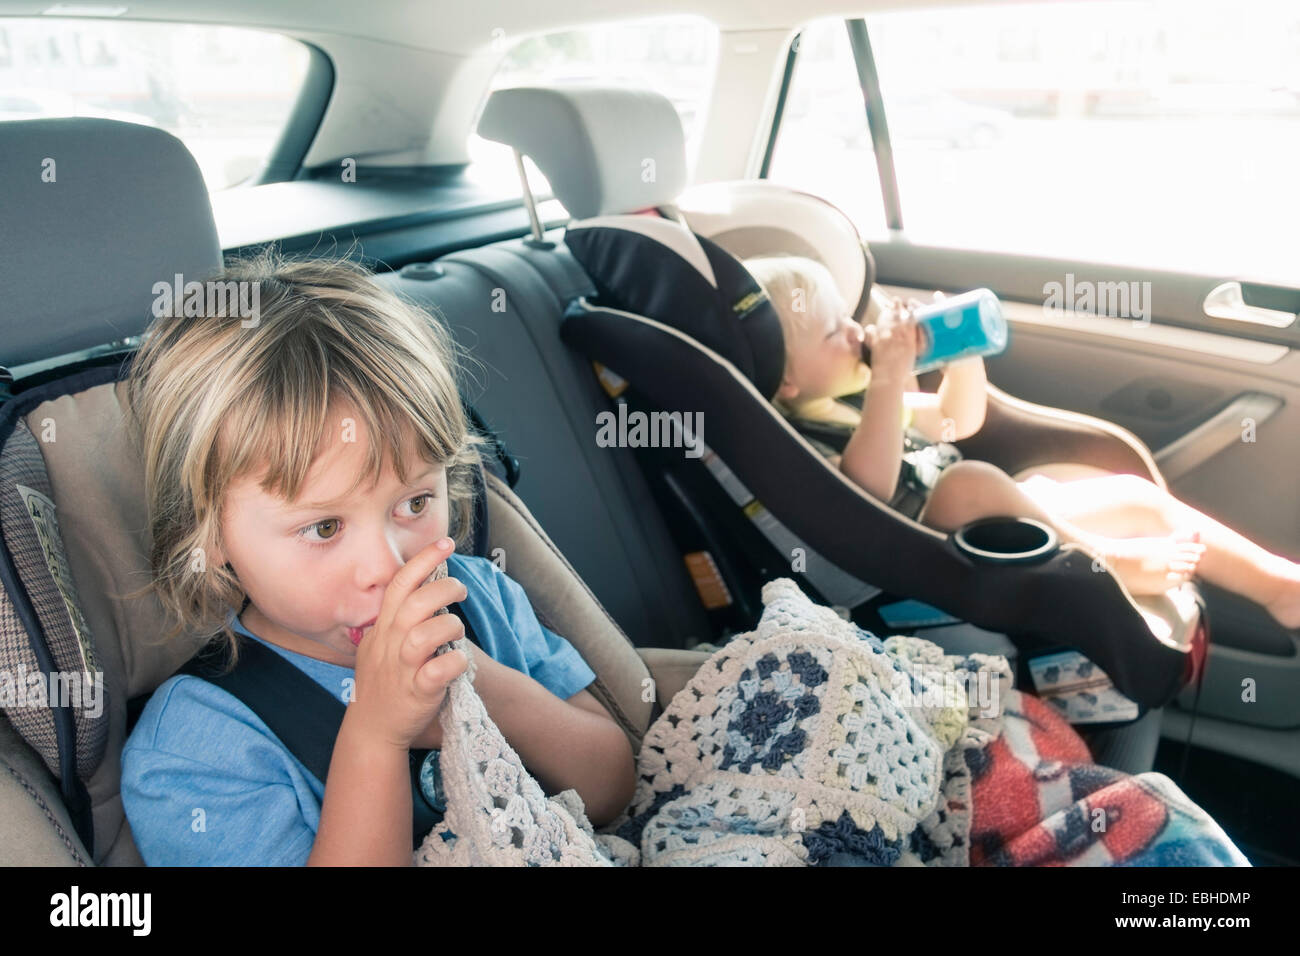 Two boys in car seats - Stock Image